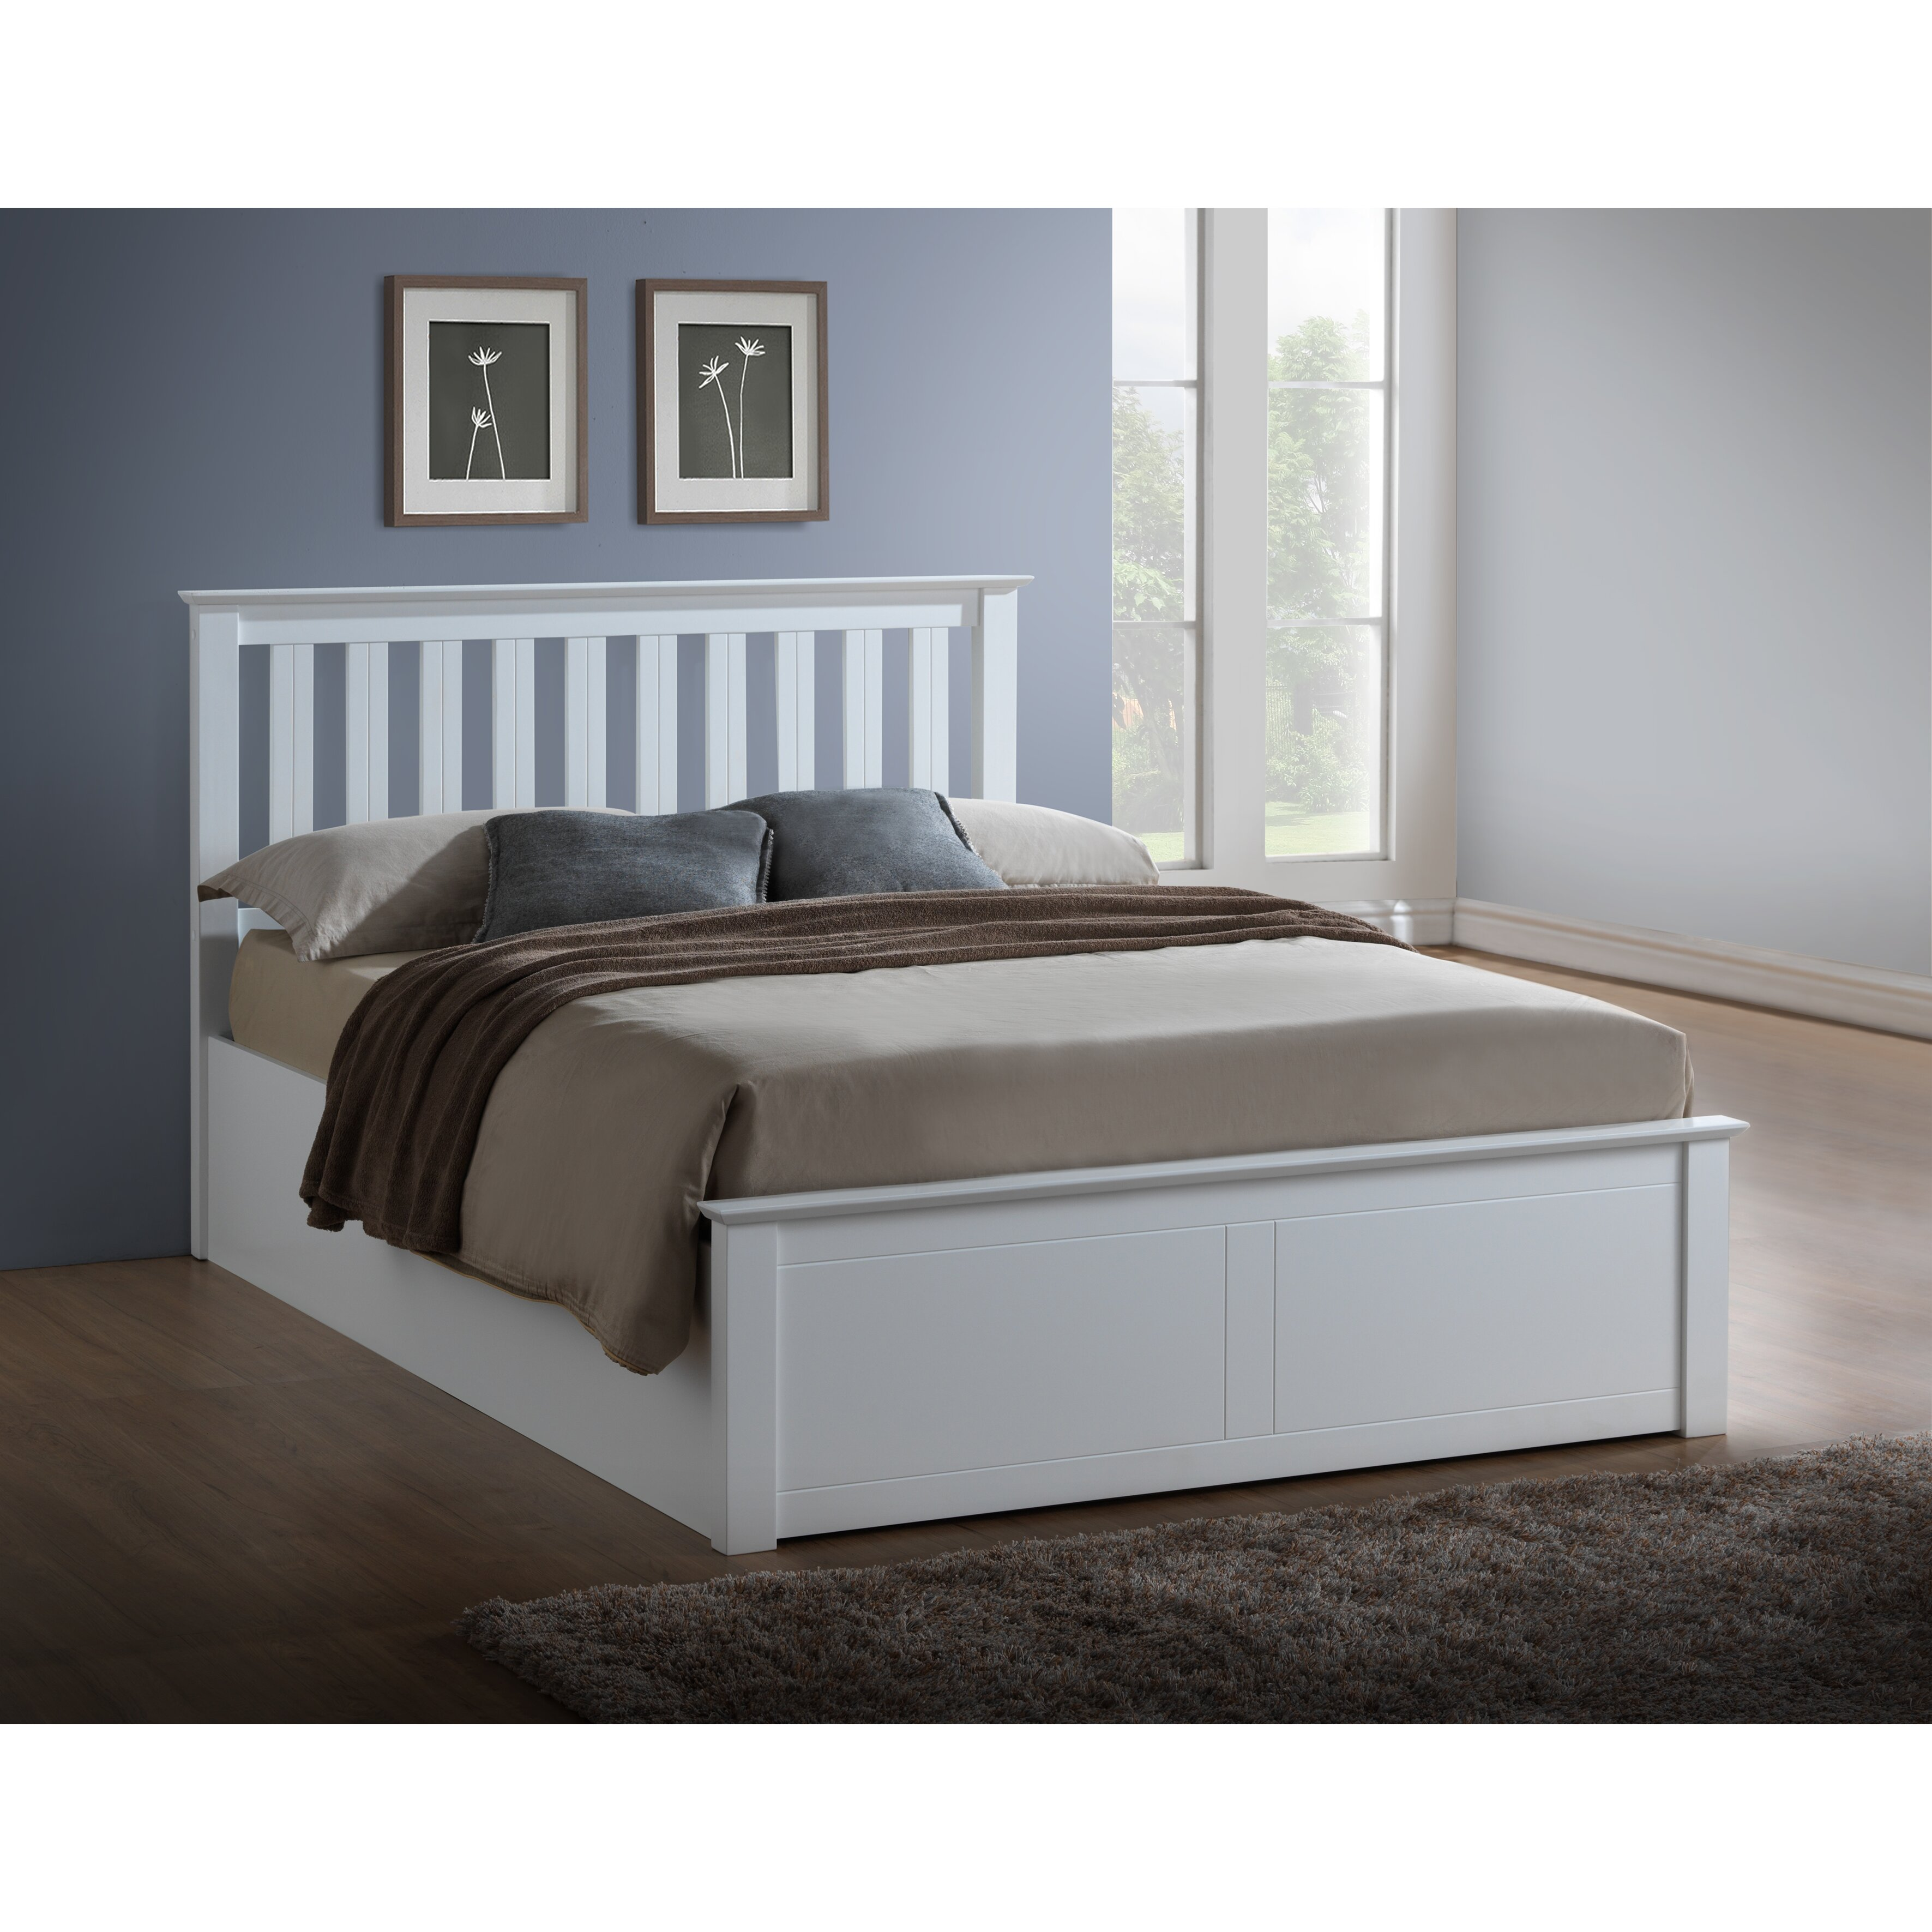 Ottoman In Bedroom Home Haus Arizona Ottoman Bed Reviews Wayfaircouk